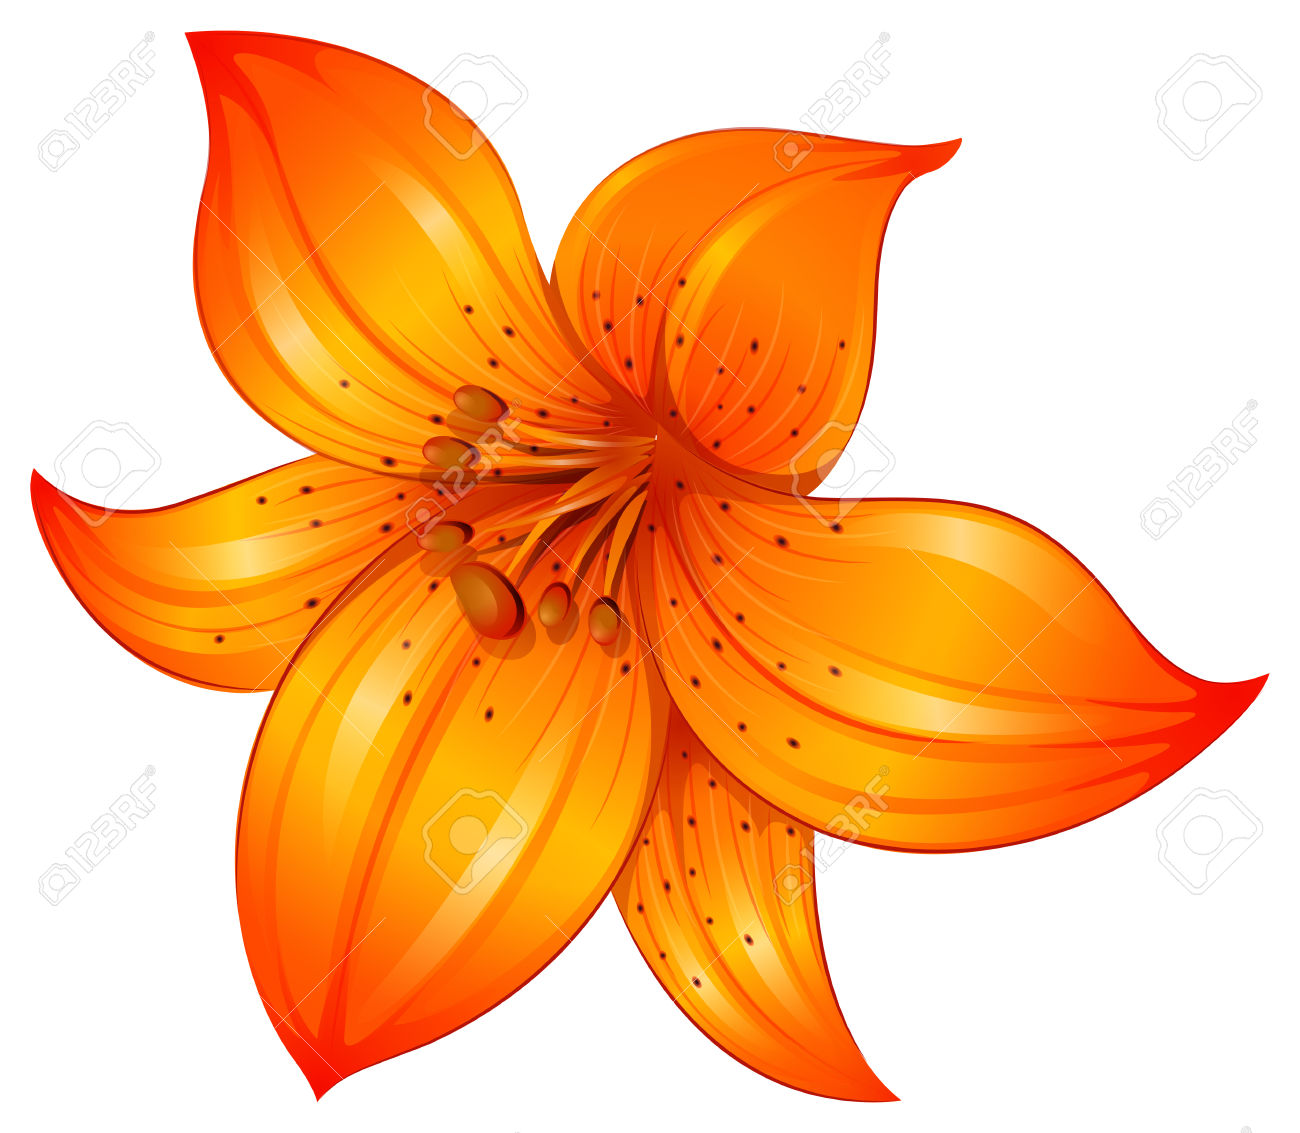 198 Lilium Cliparts, Stock Vector And Royalty Free Lilium.